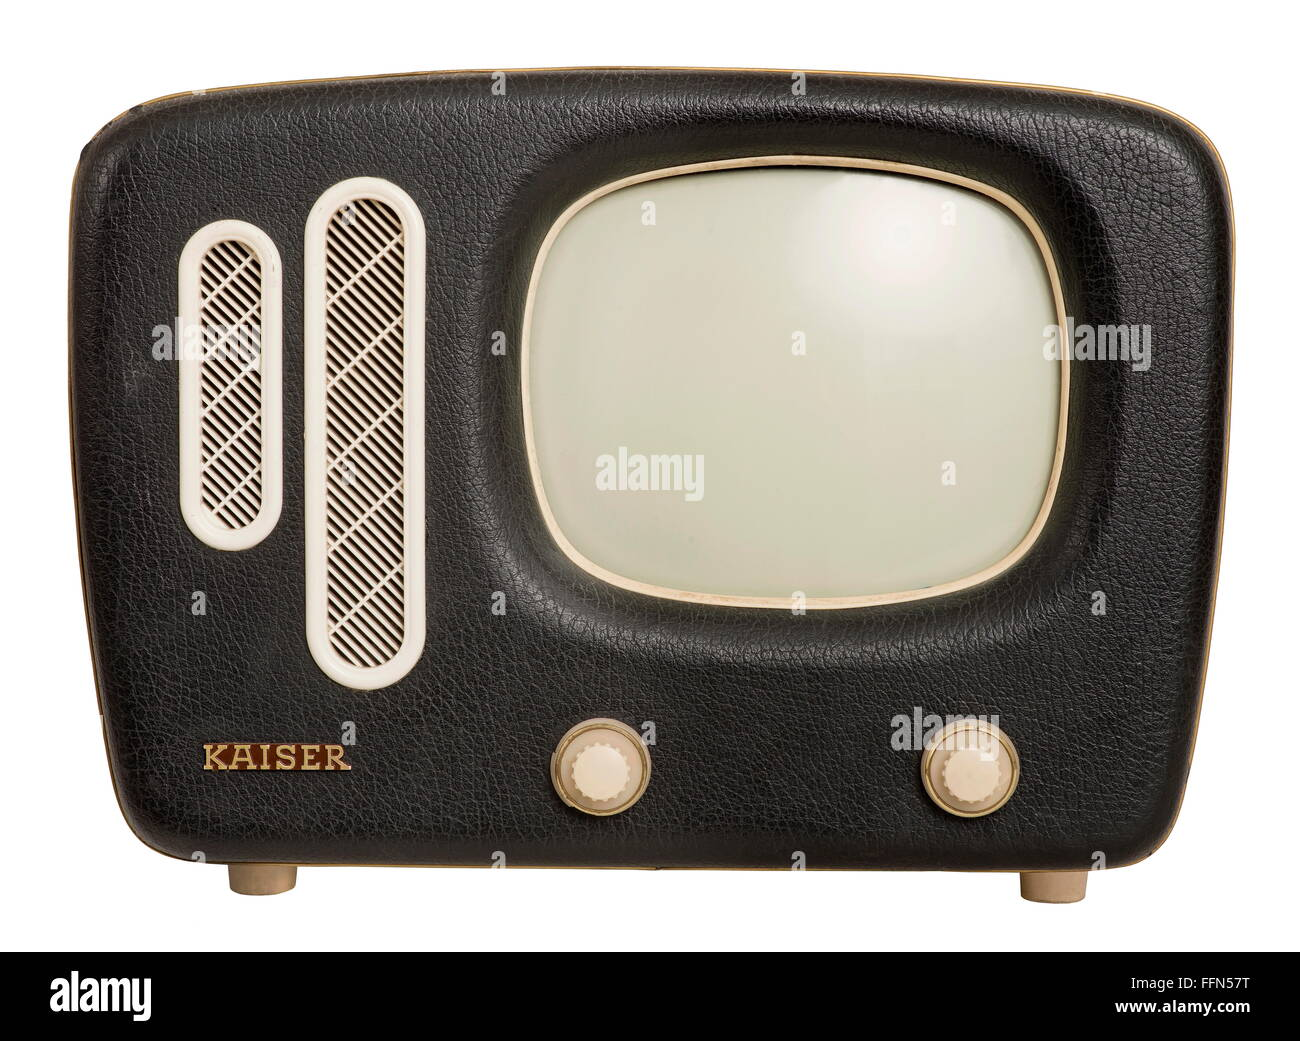 broadcast, television, television set Kaiser, version Prinz, weight: 11.5 kilogram, first portable television set - Stock Image